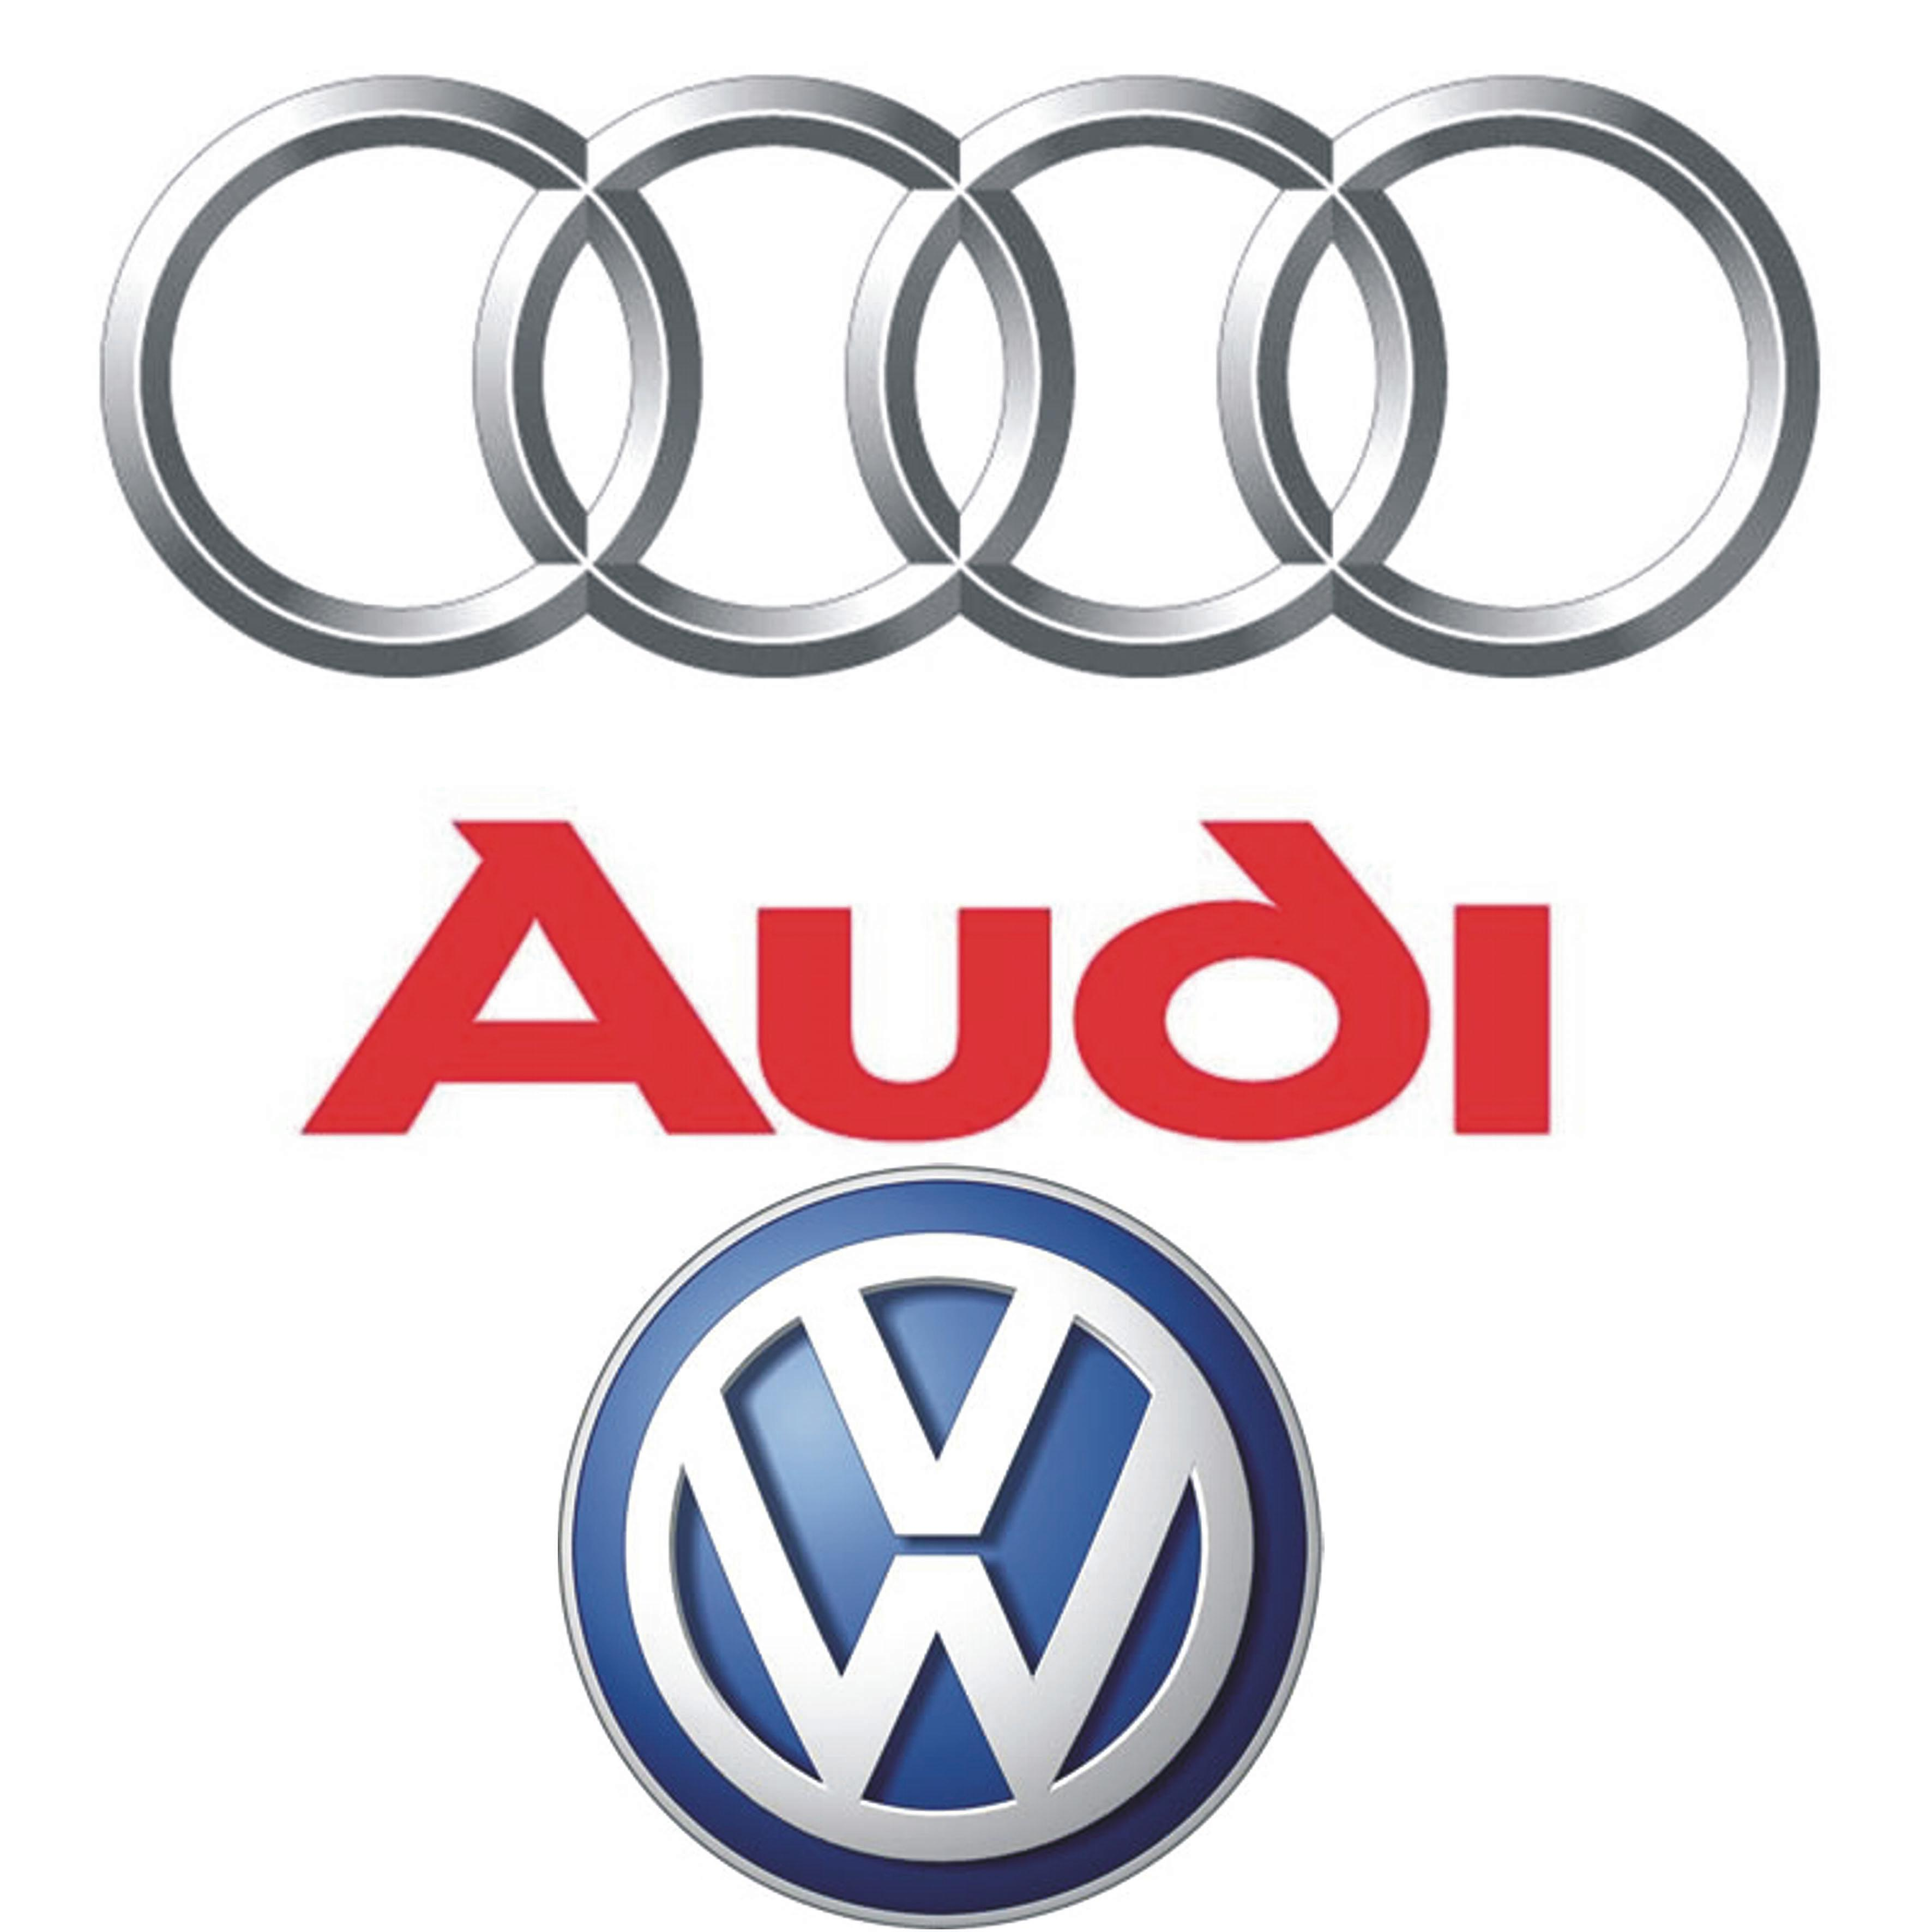 Ml Aerosol VolkswagenAudi Vehicle Industrial Paints K Acrylic - Volkswagen audi